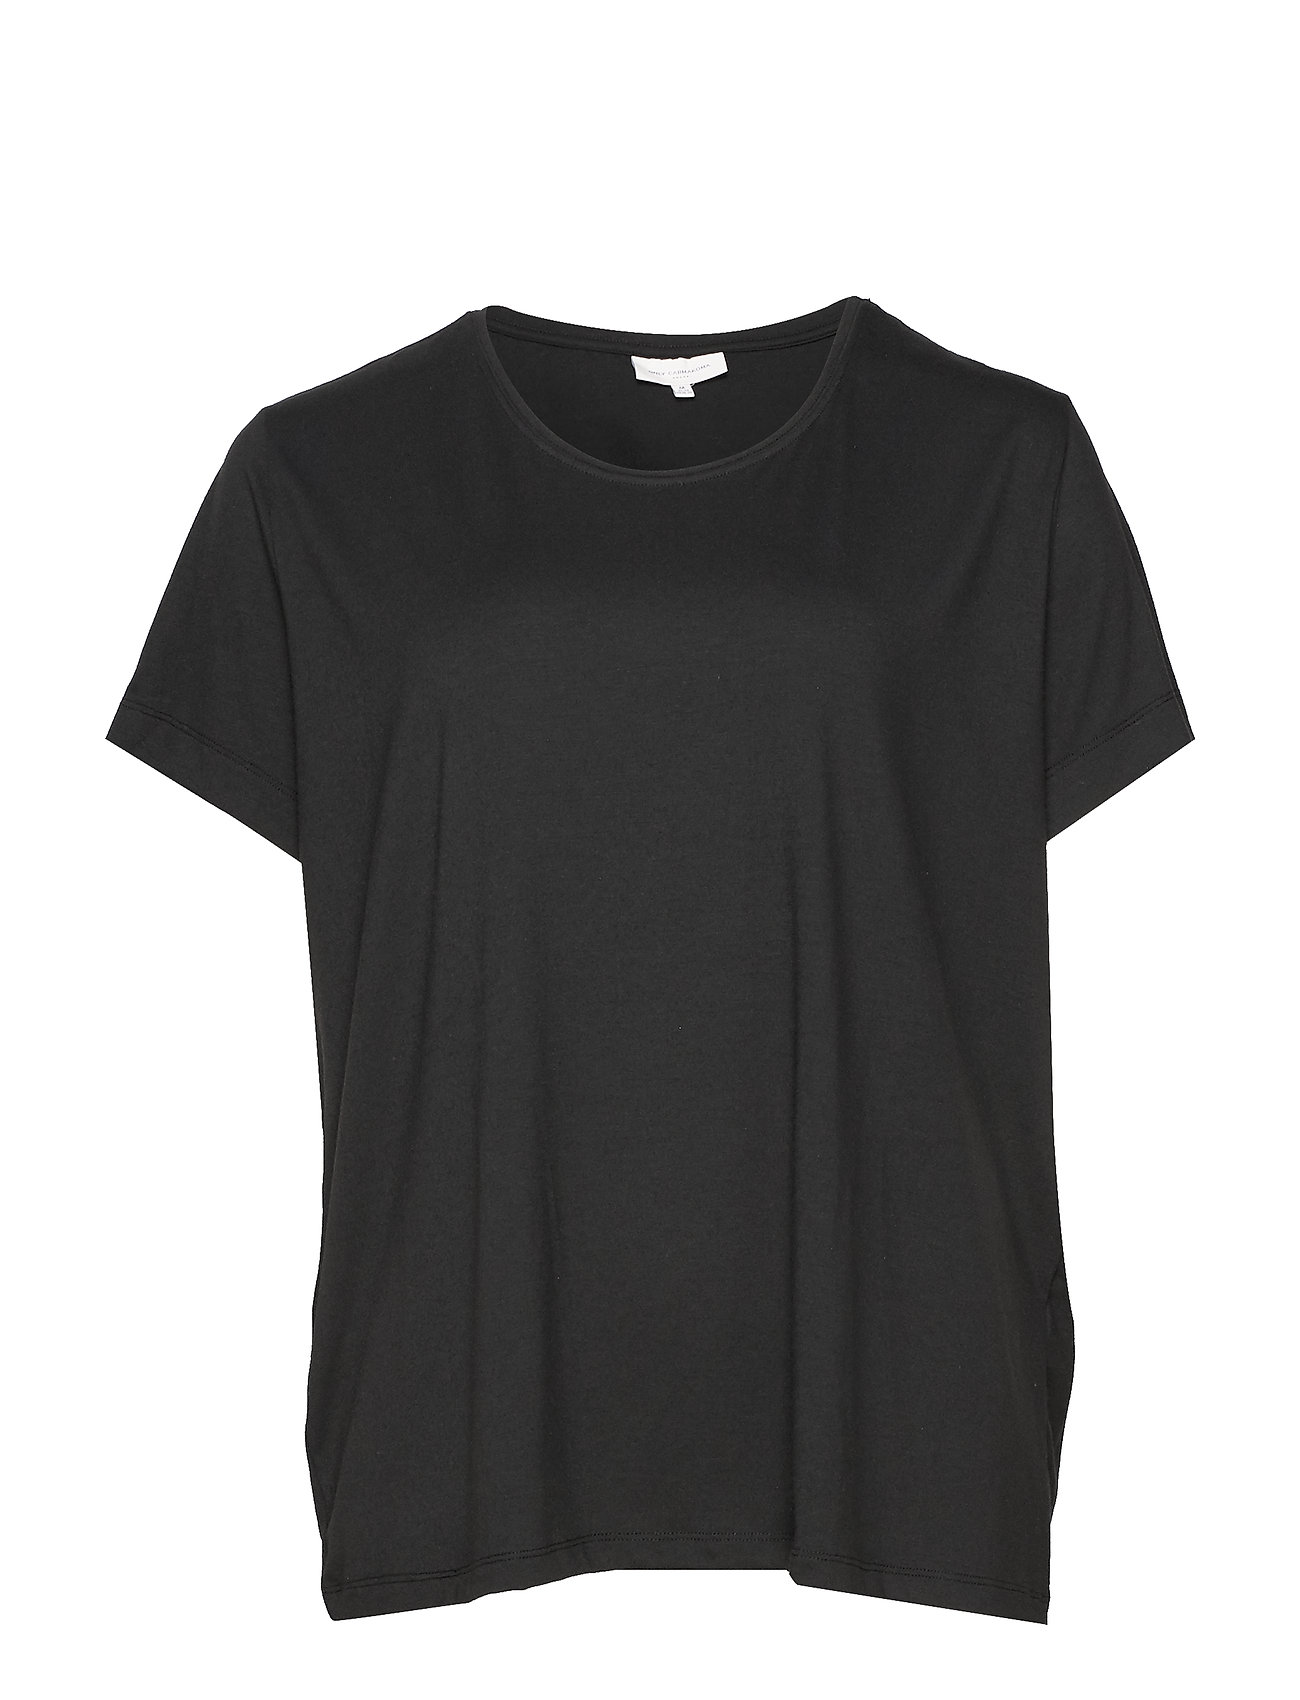 Image of Carcarmakoma S/S Top Noos T-shirt Top Sort ONLY Carmakoma (3298975313)